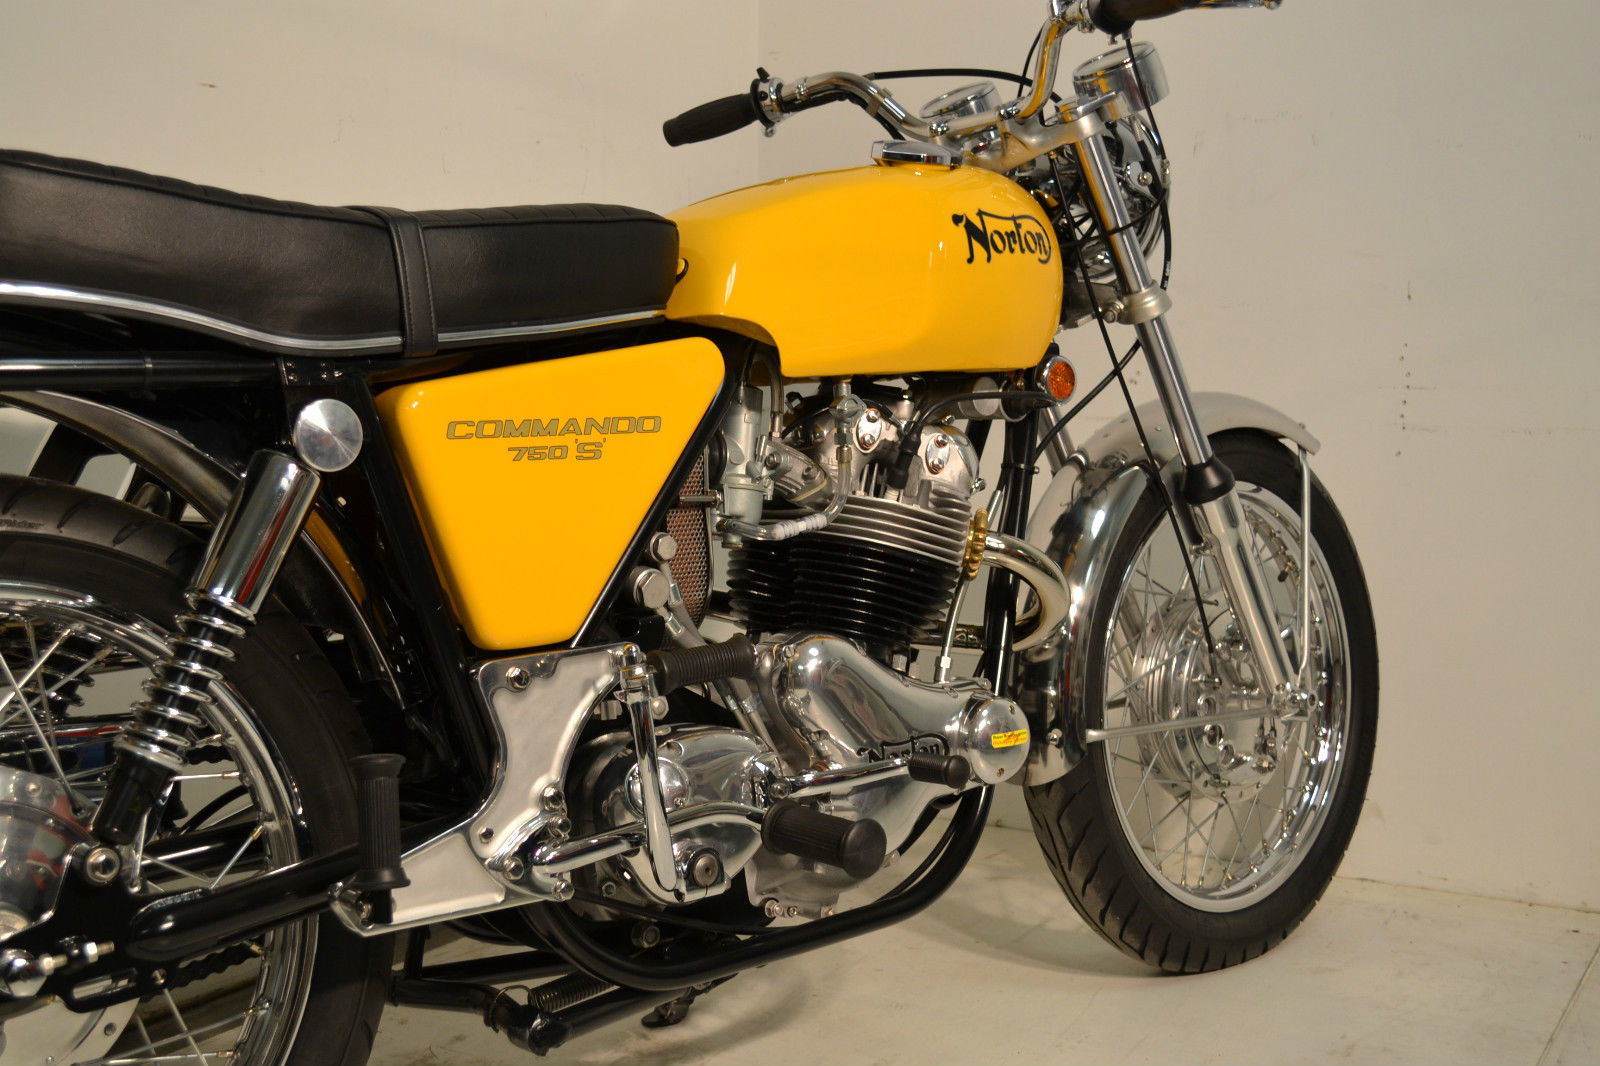 Norton Commando S-Type - 1969 - Transmission, Side Panel and Footrest.